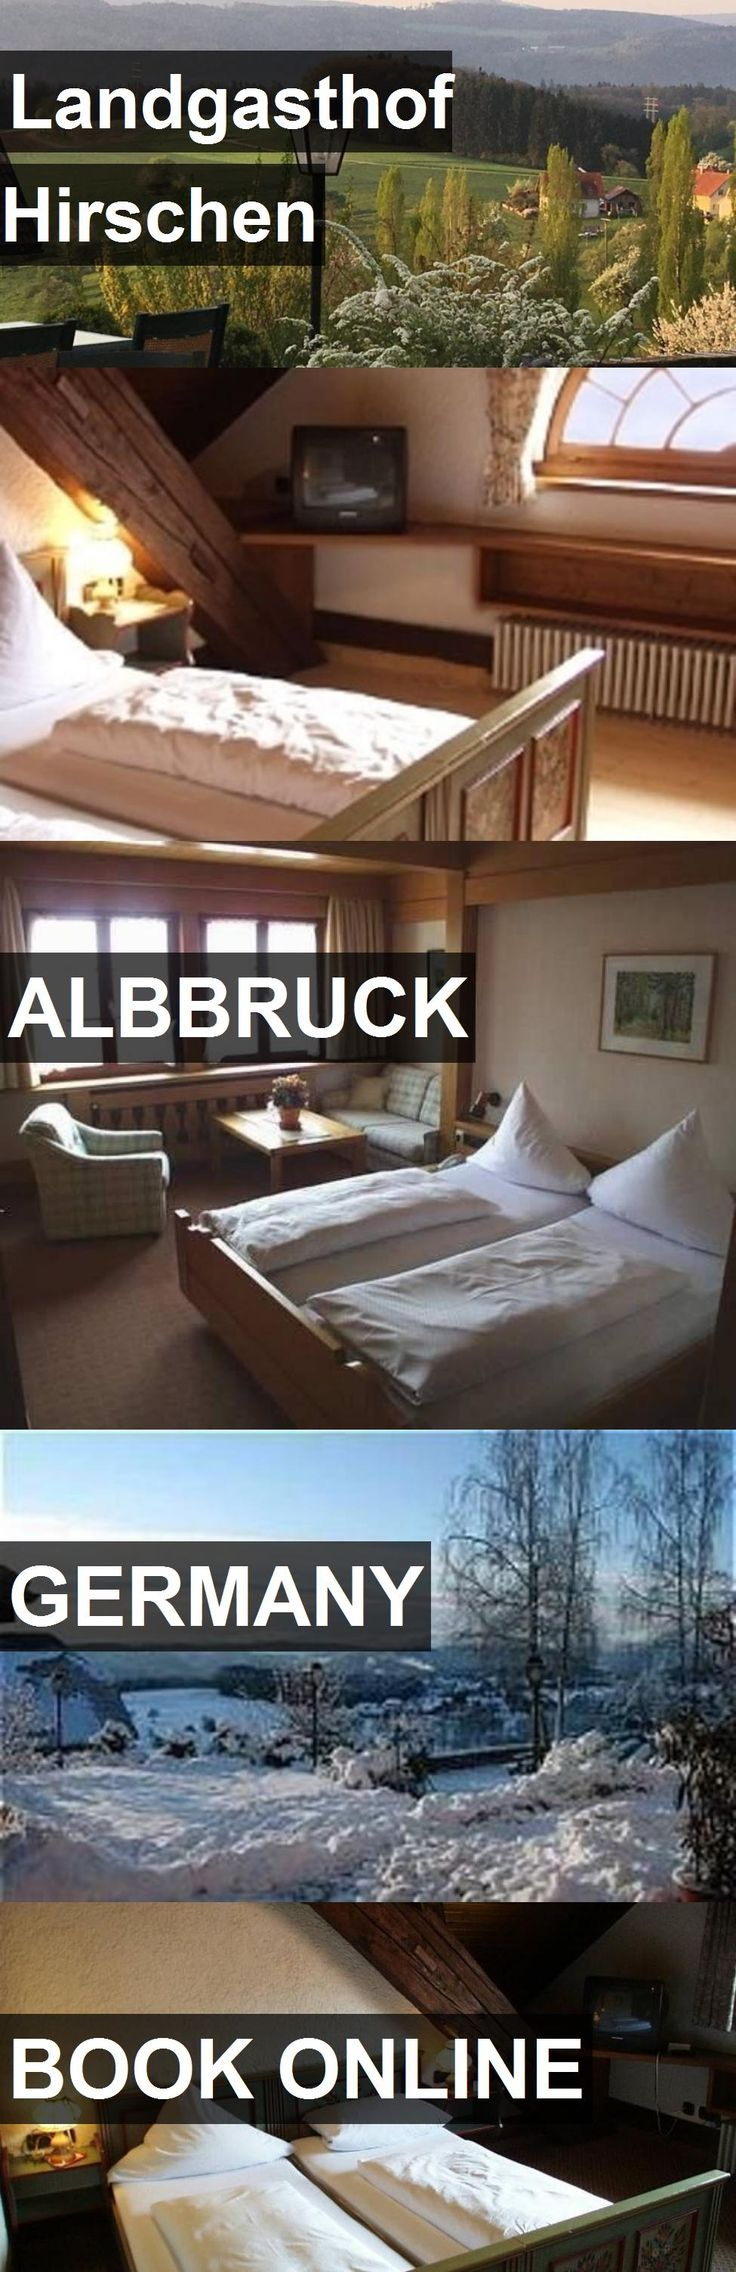 Hotel Landgasthof Hirschen in Albbruck, Germany. For more information, photos, reviews and best prices please follow the link. #Germany #Albbruck #travel #vacation #hotel